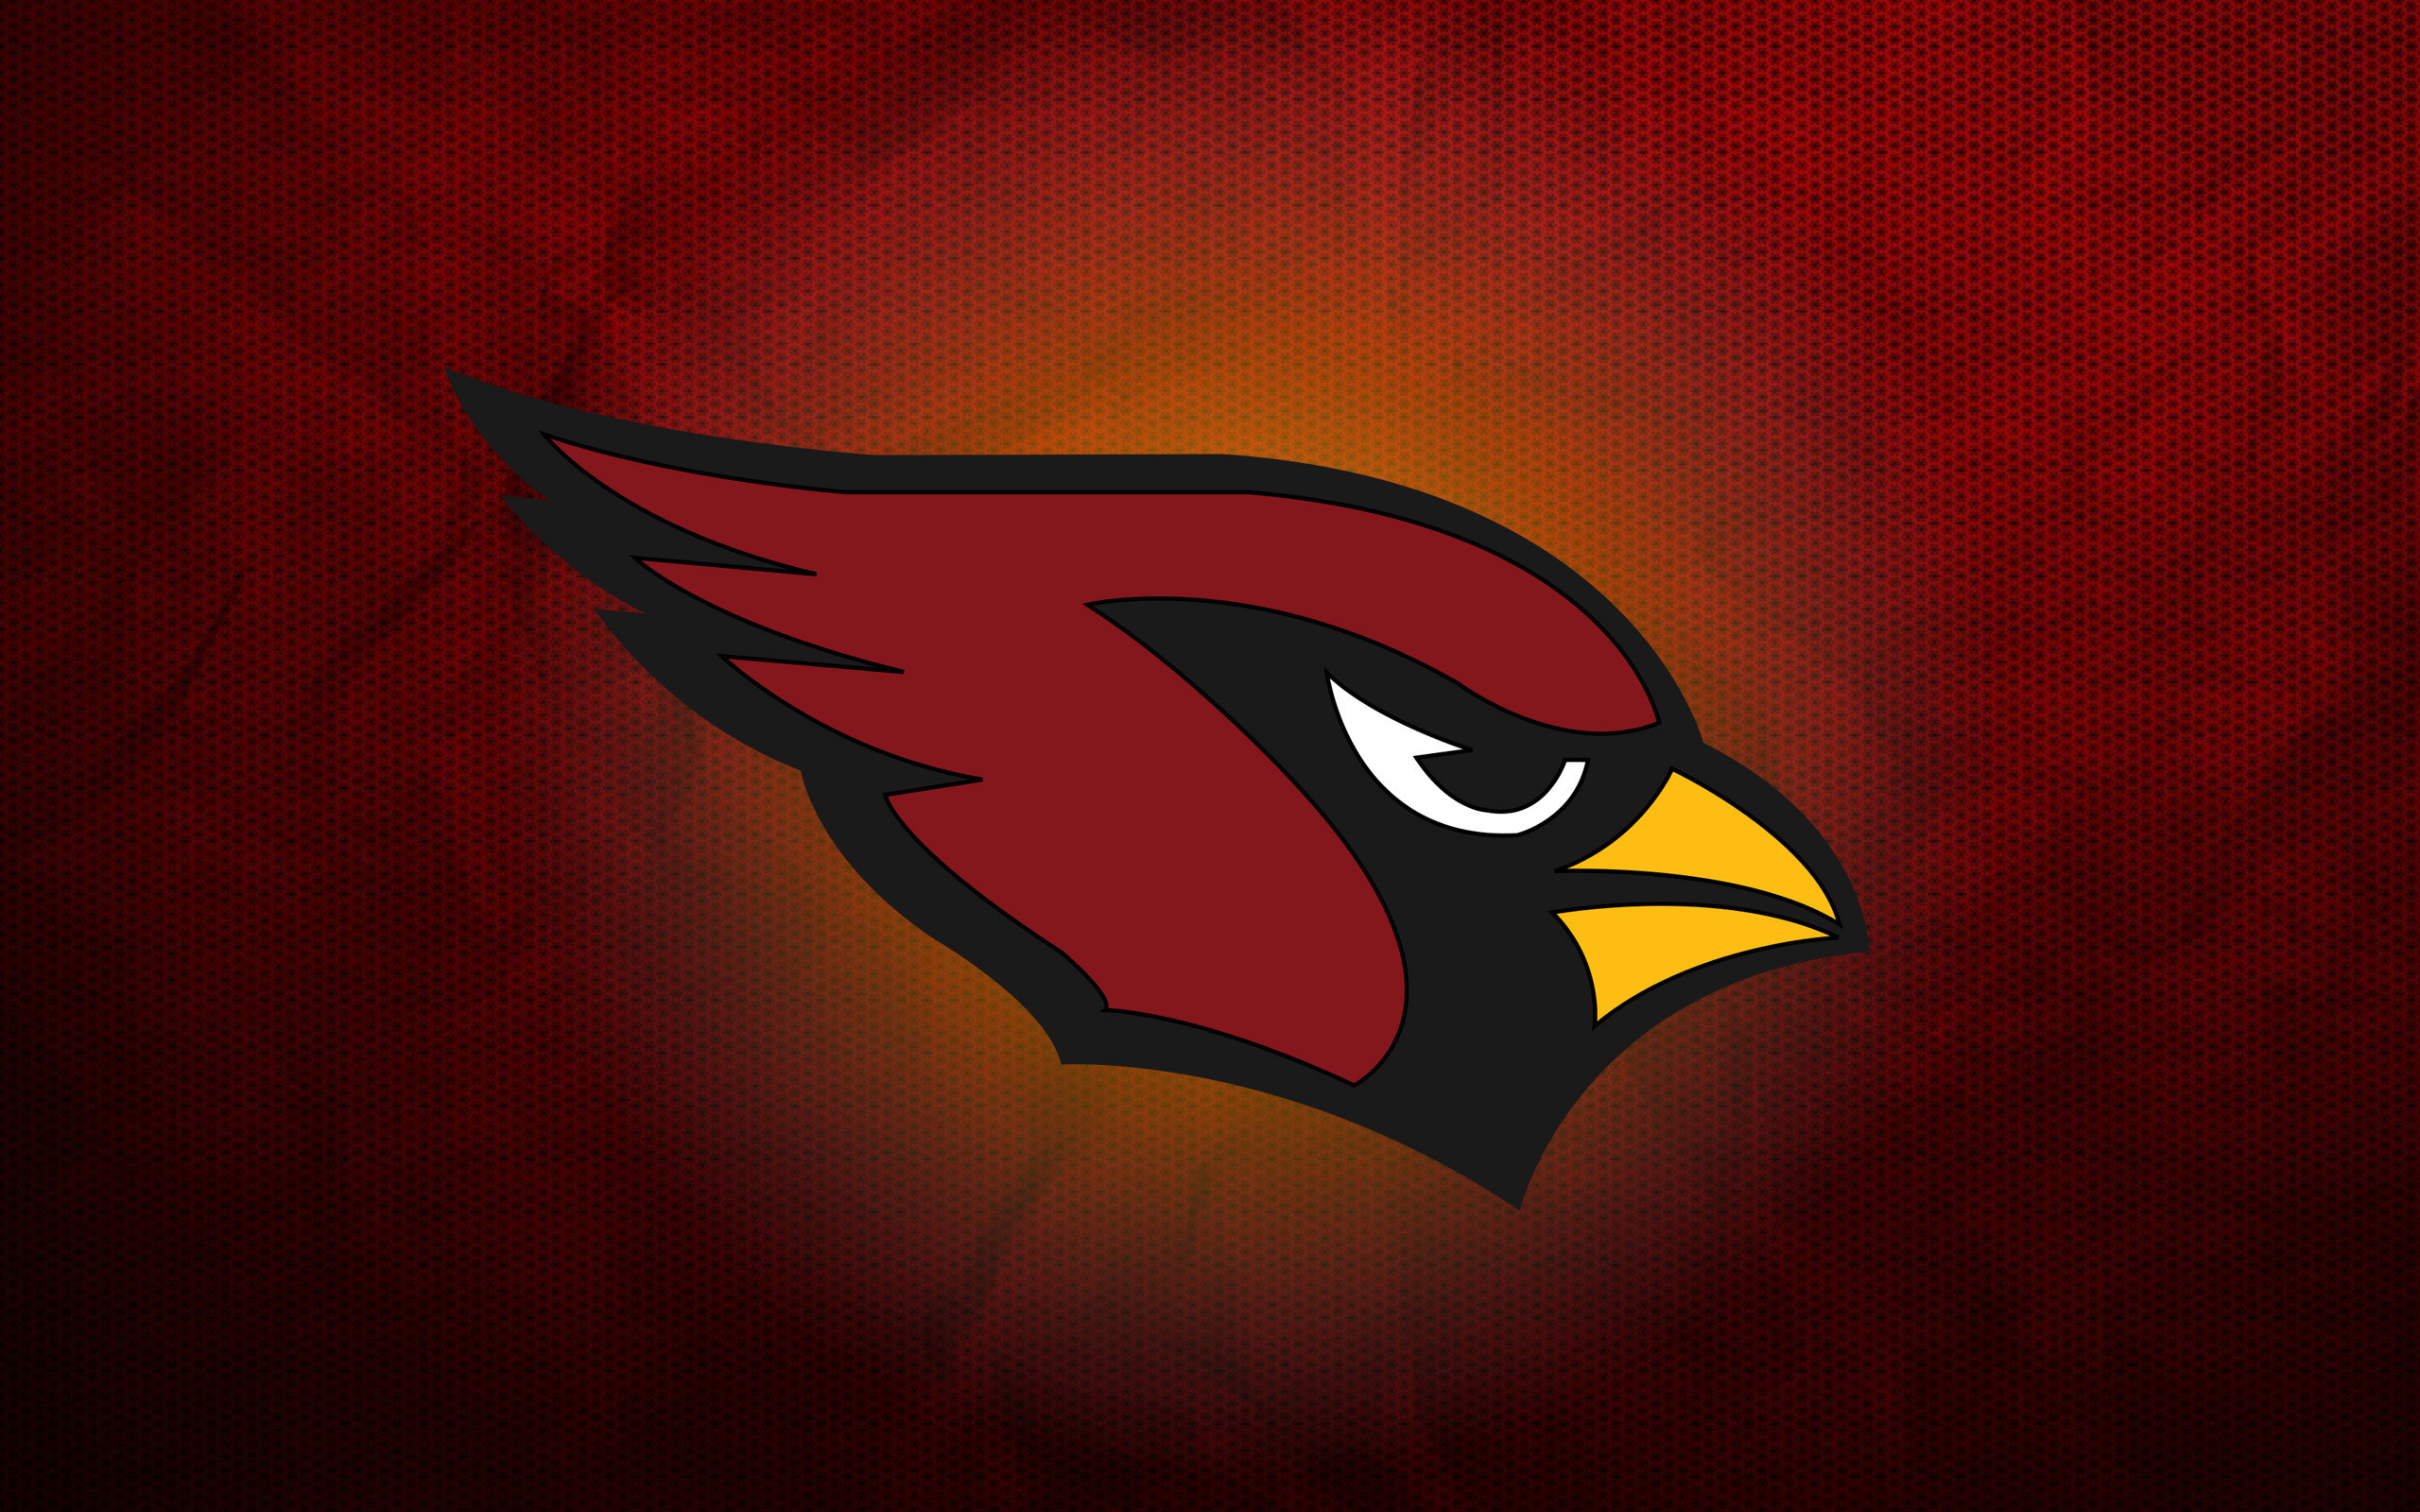 Arizona Cardinals 2014 NFL Logo Wallpaper 2560x1600